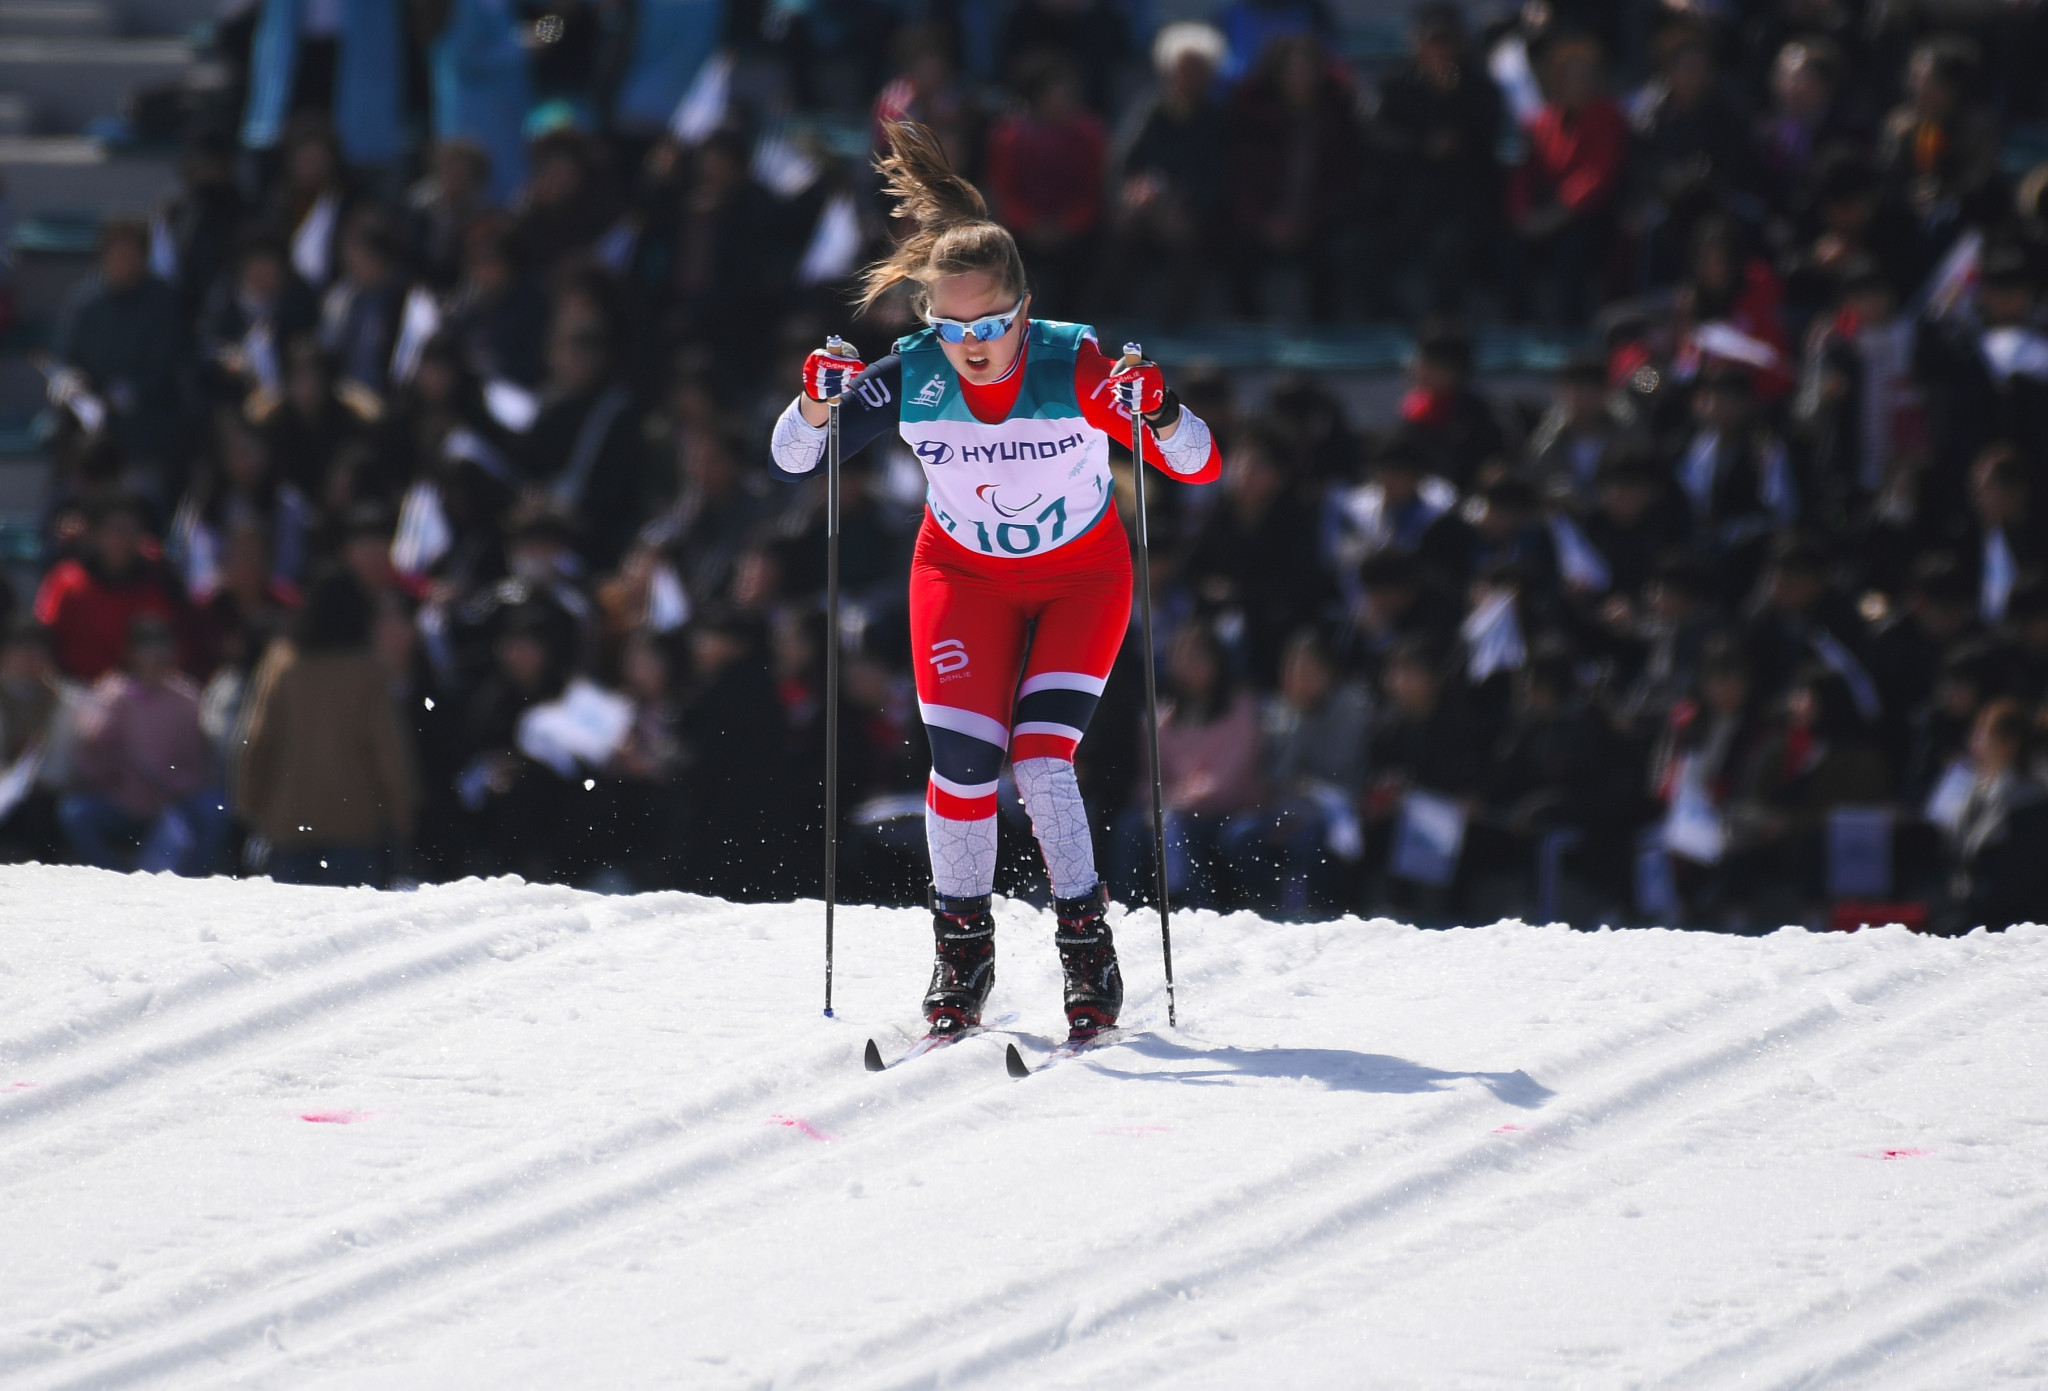 Norway's Vilde Nilsen will aim to continue her dominance in the women's standing events at the second Para Nordic Skiing World Cup event of the season in Östersund ©Getty Images